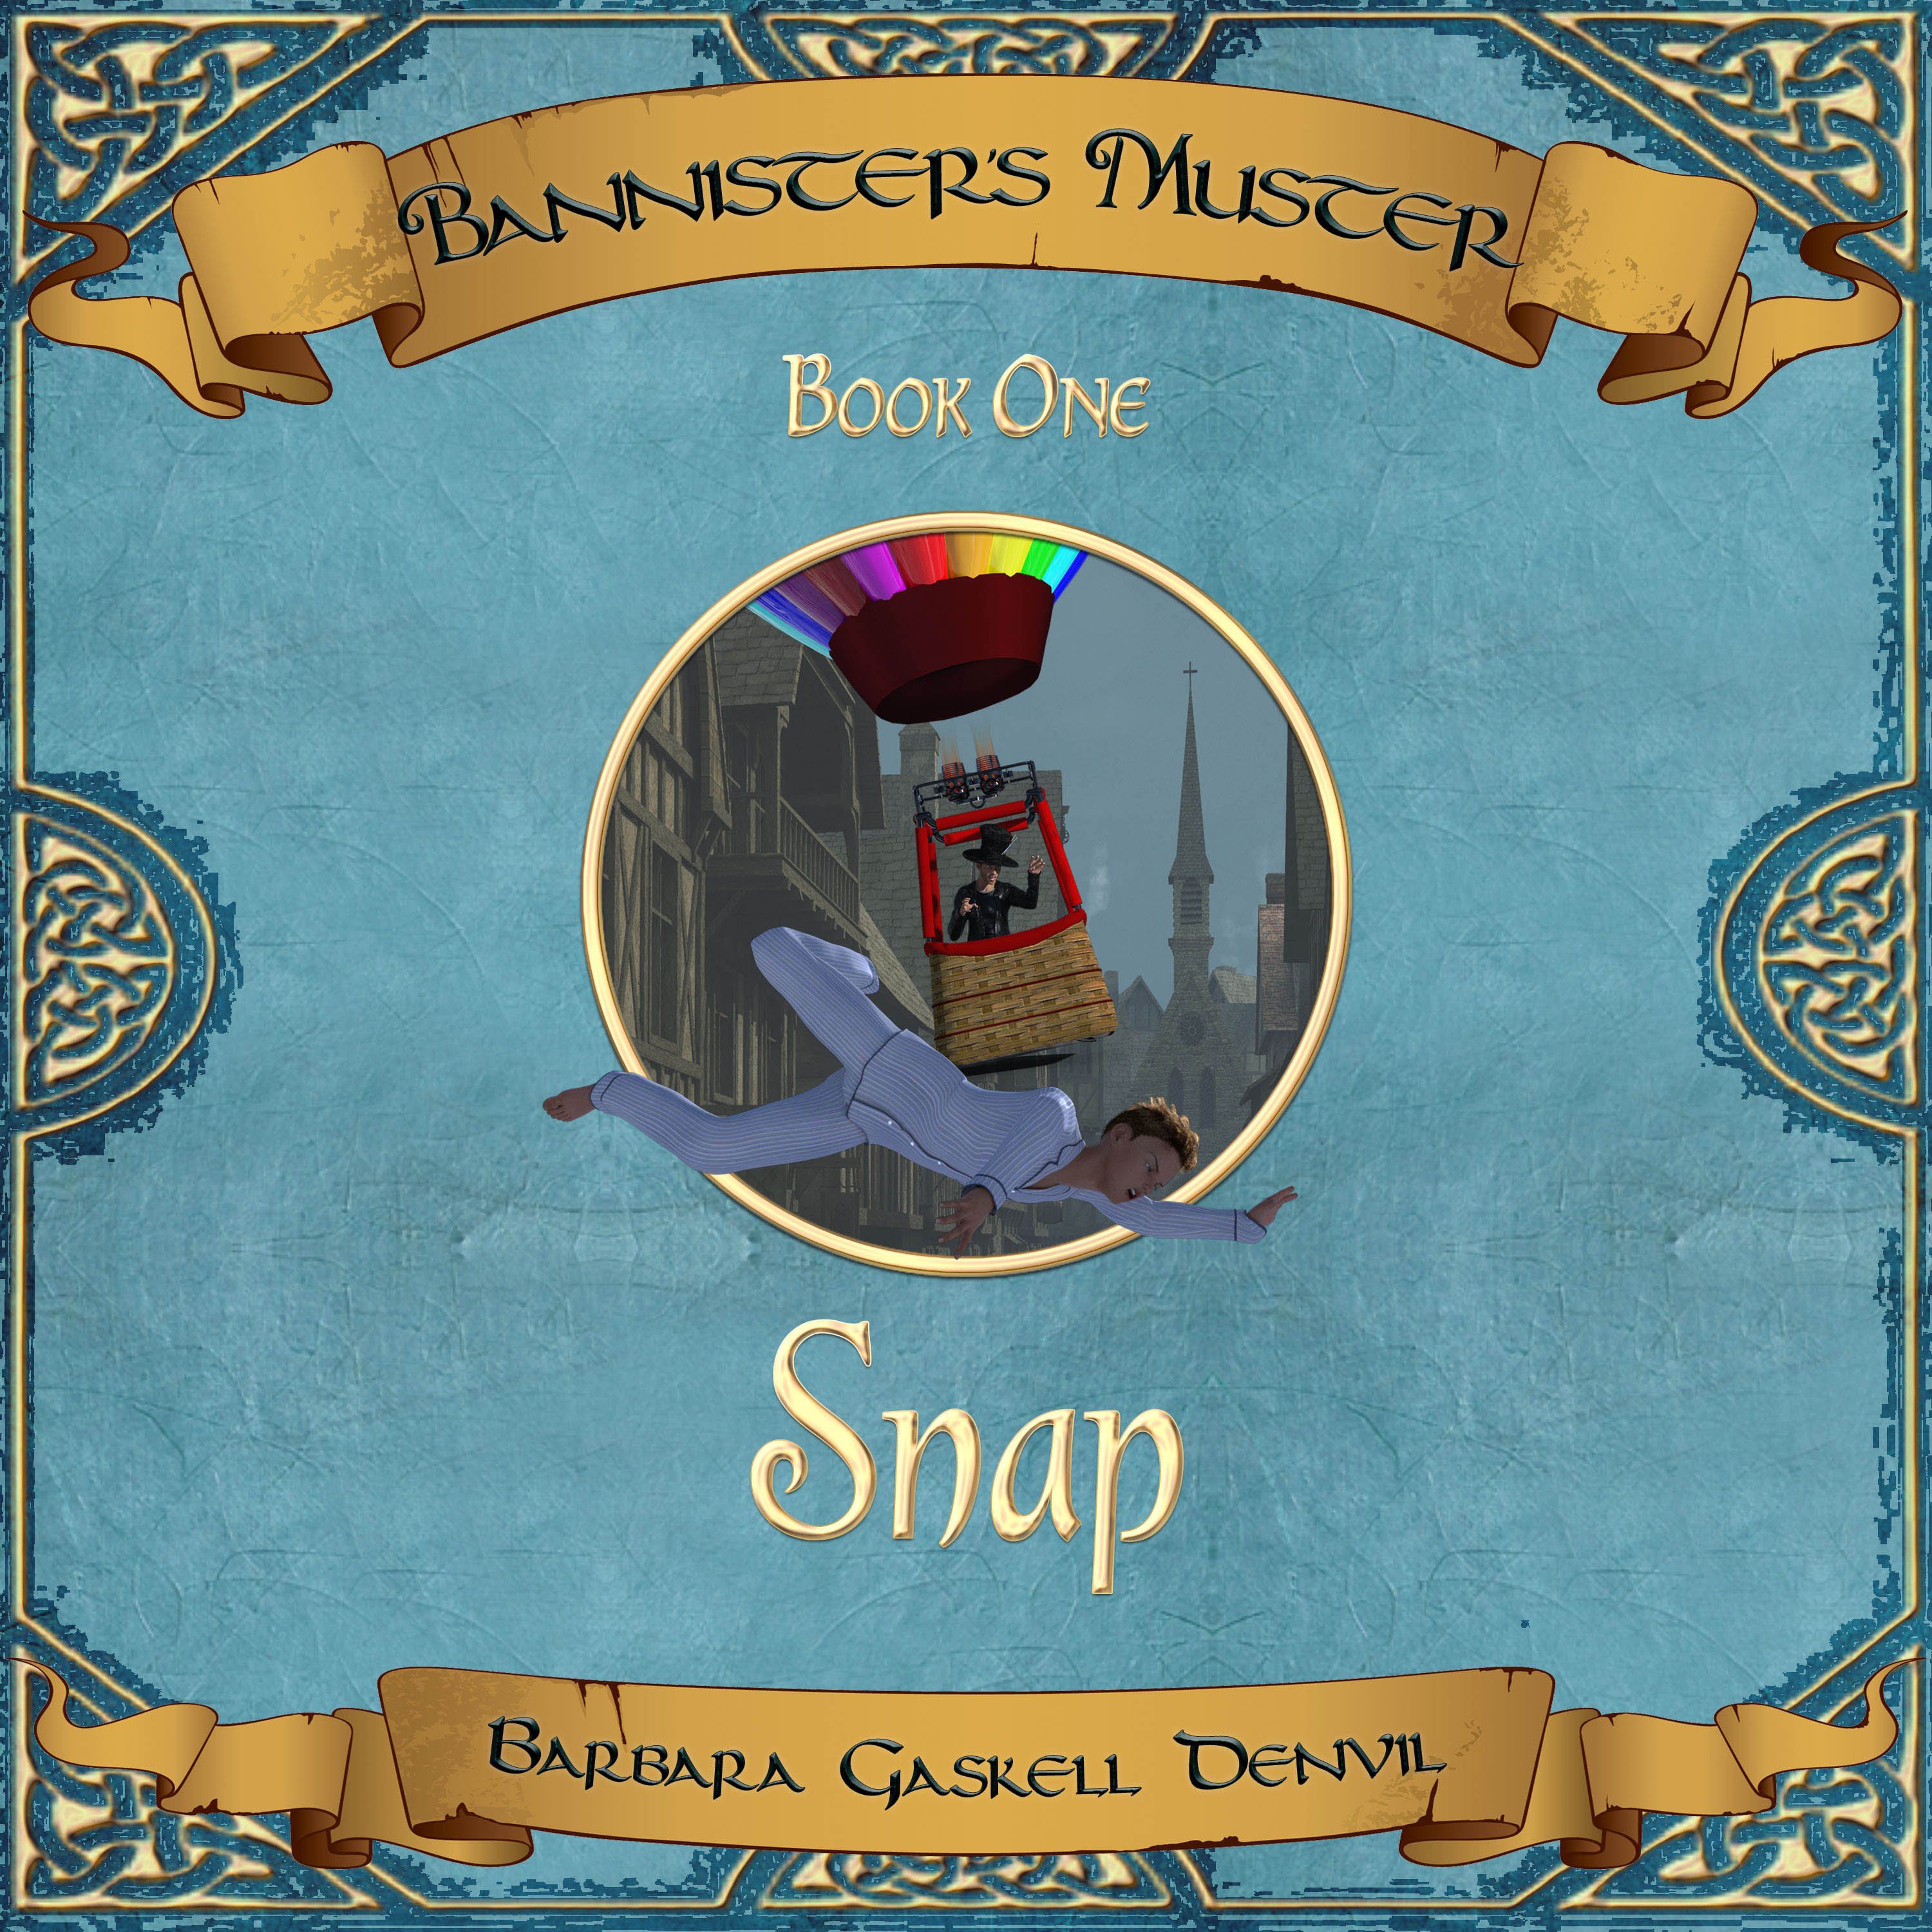 Bannister's Muster Book One Snap by Barbara Gaskell Denvil